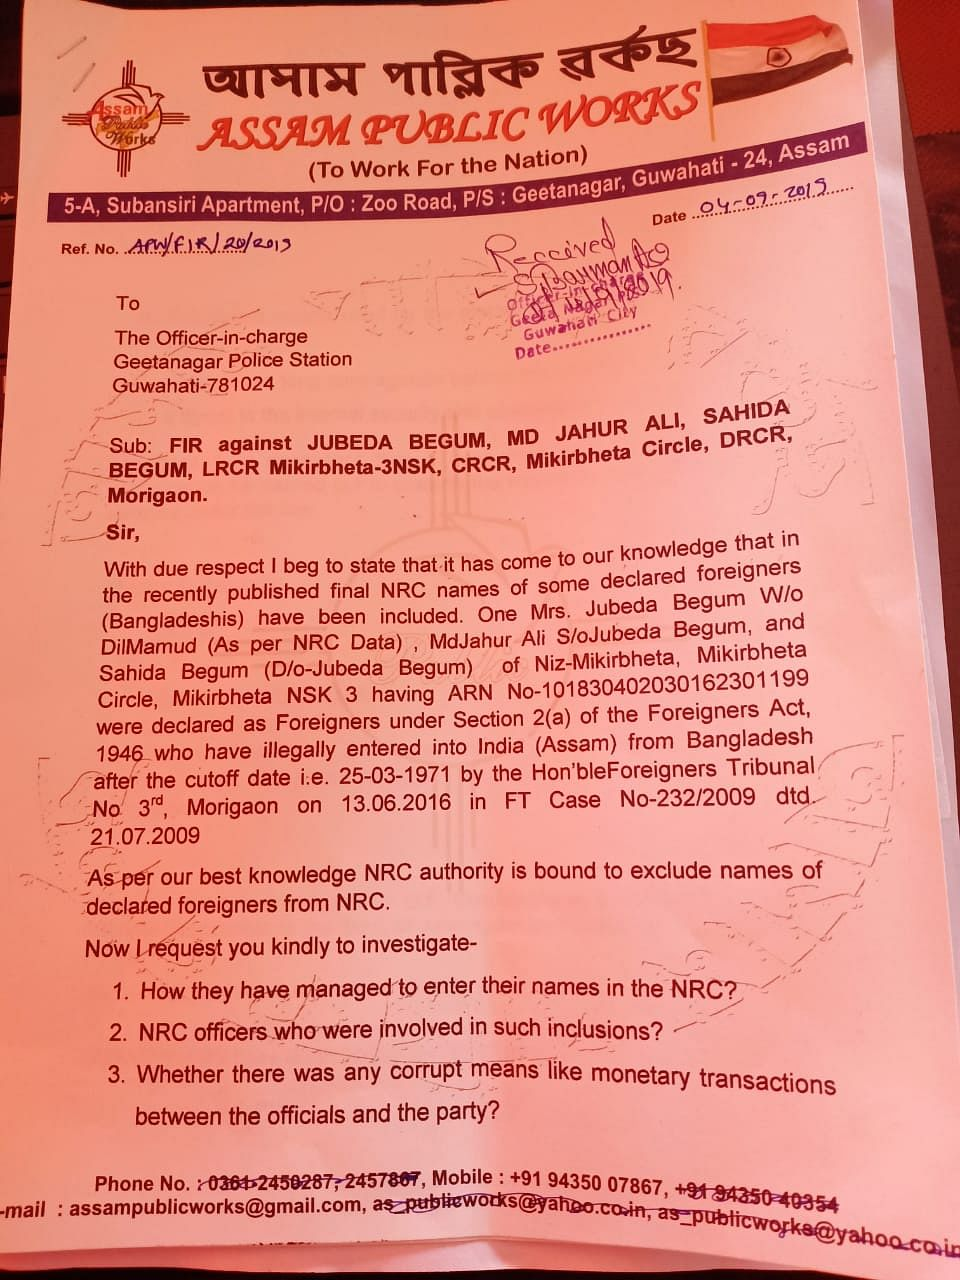 Copy of the FIR (page 1) lodged by Assam Public Works against the three 'foreigners' whose names figured in the final NRC published on August 31